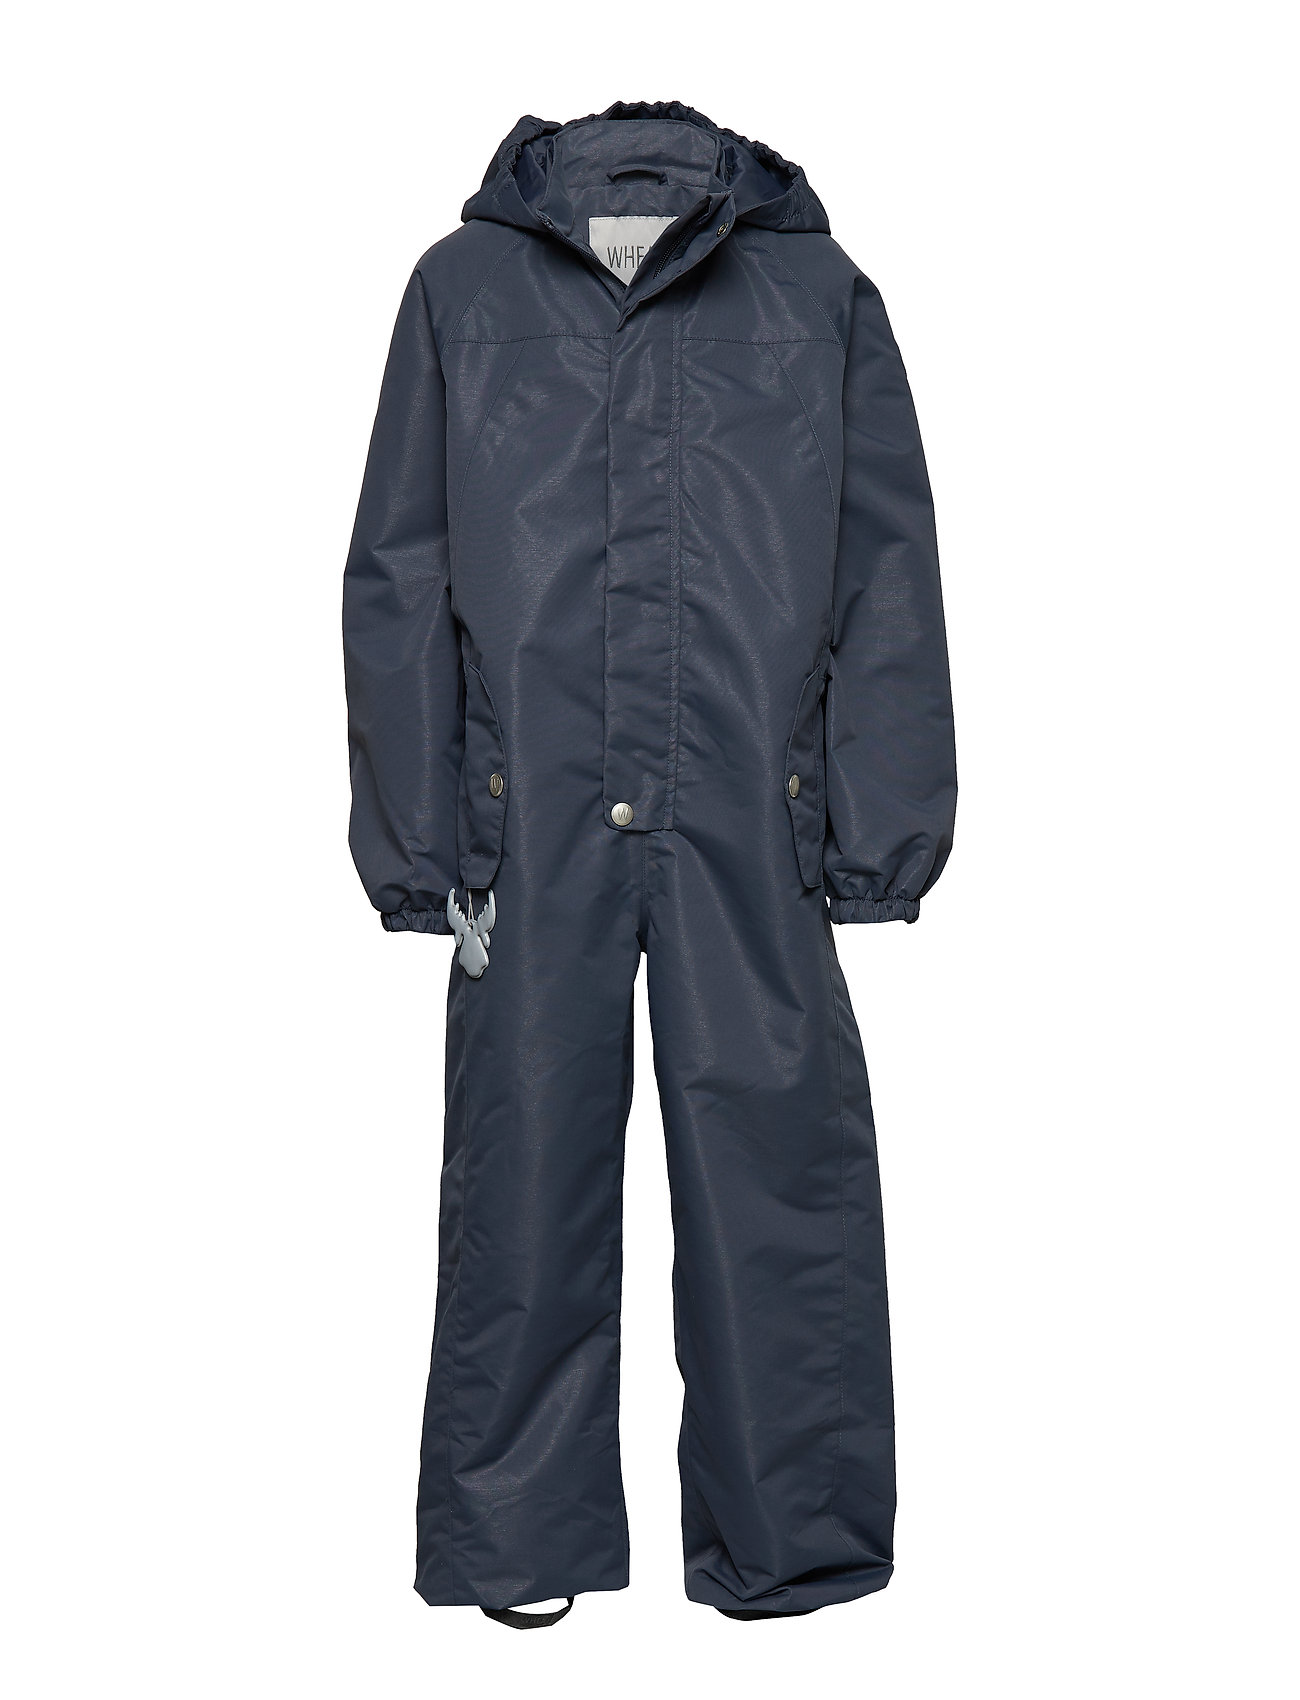 Wheat Suit Outdoor Frankie - GREYBLUE